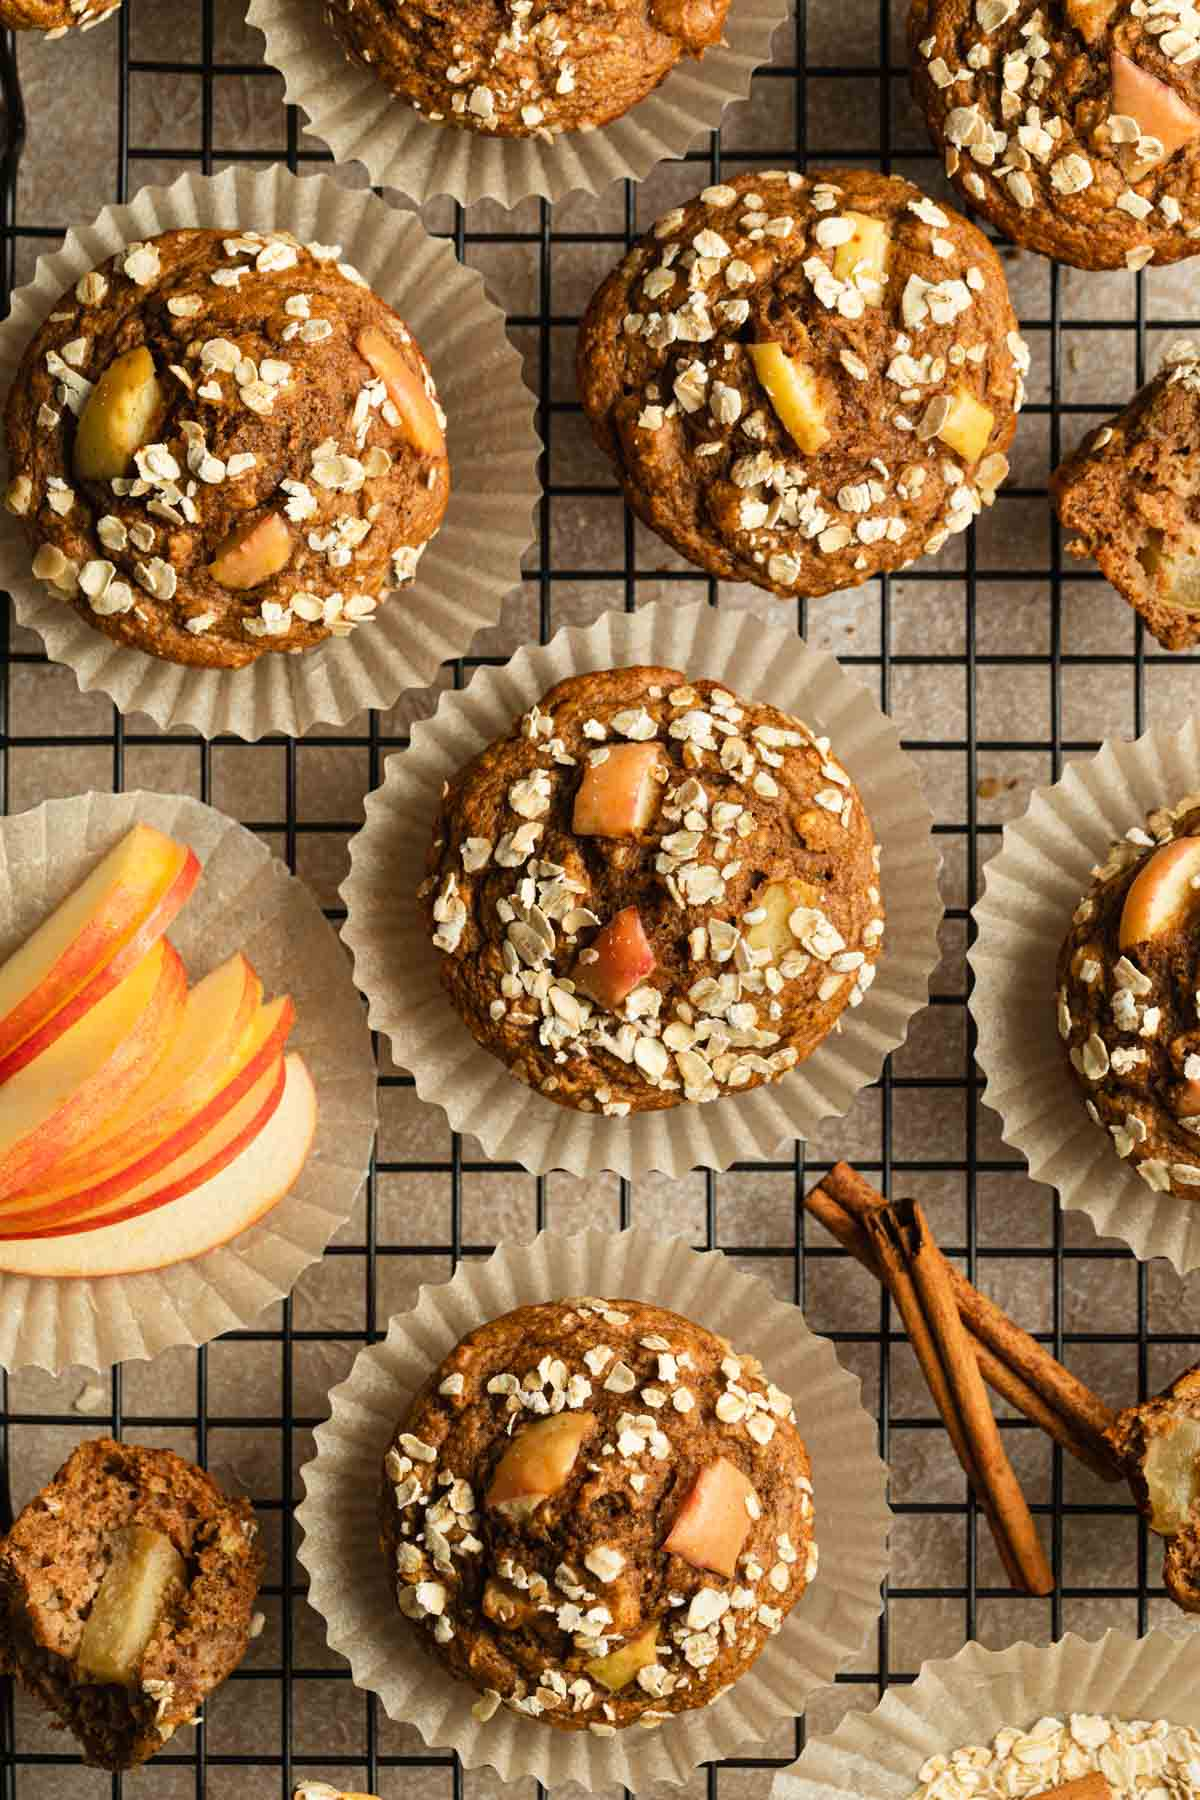 Apple muffins on a wire rack.